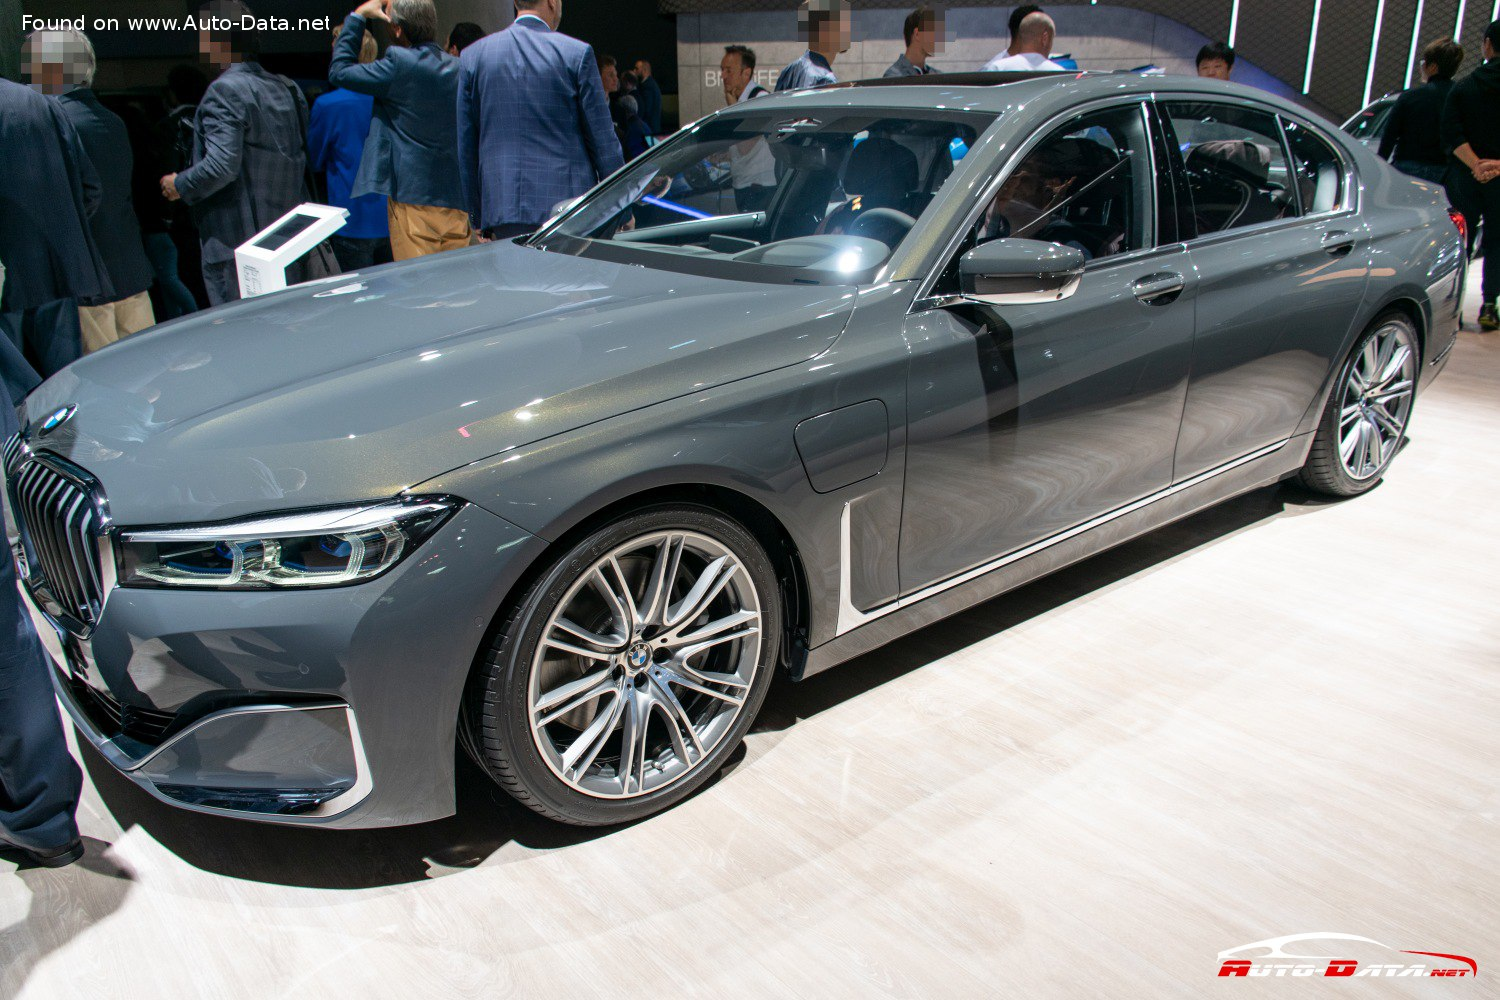 2020 Bmw 7 Series G11 Lci Facelift 2019 740d 340 Hp Xdrive Mhev Steptronic Technical Specs Data Fuel Consumption Dimensions